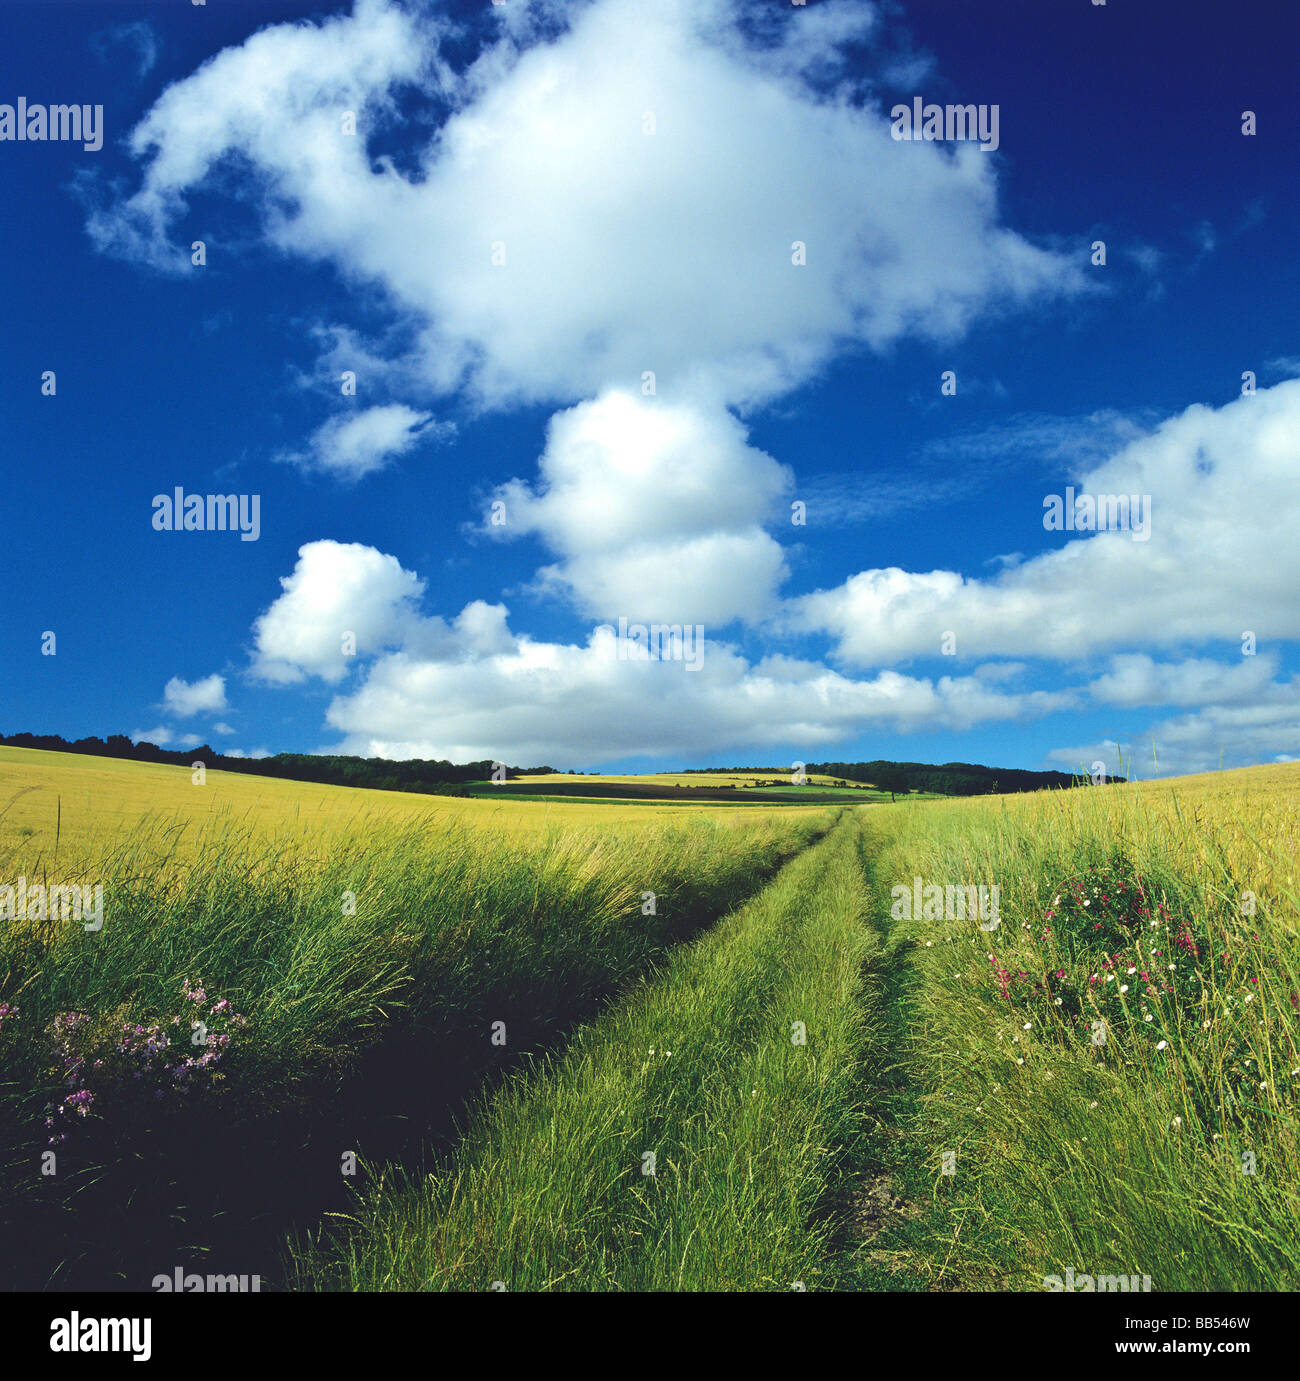 Grassy  path in the middle of a wheat field in Auvergne. France. - Stock Image